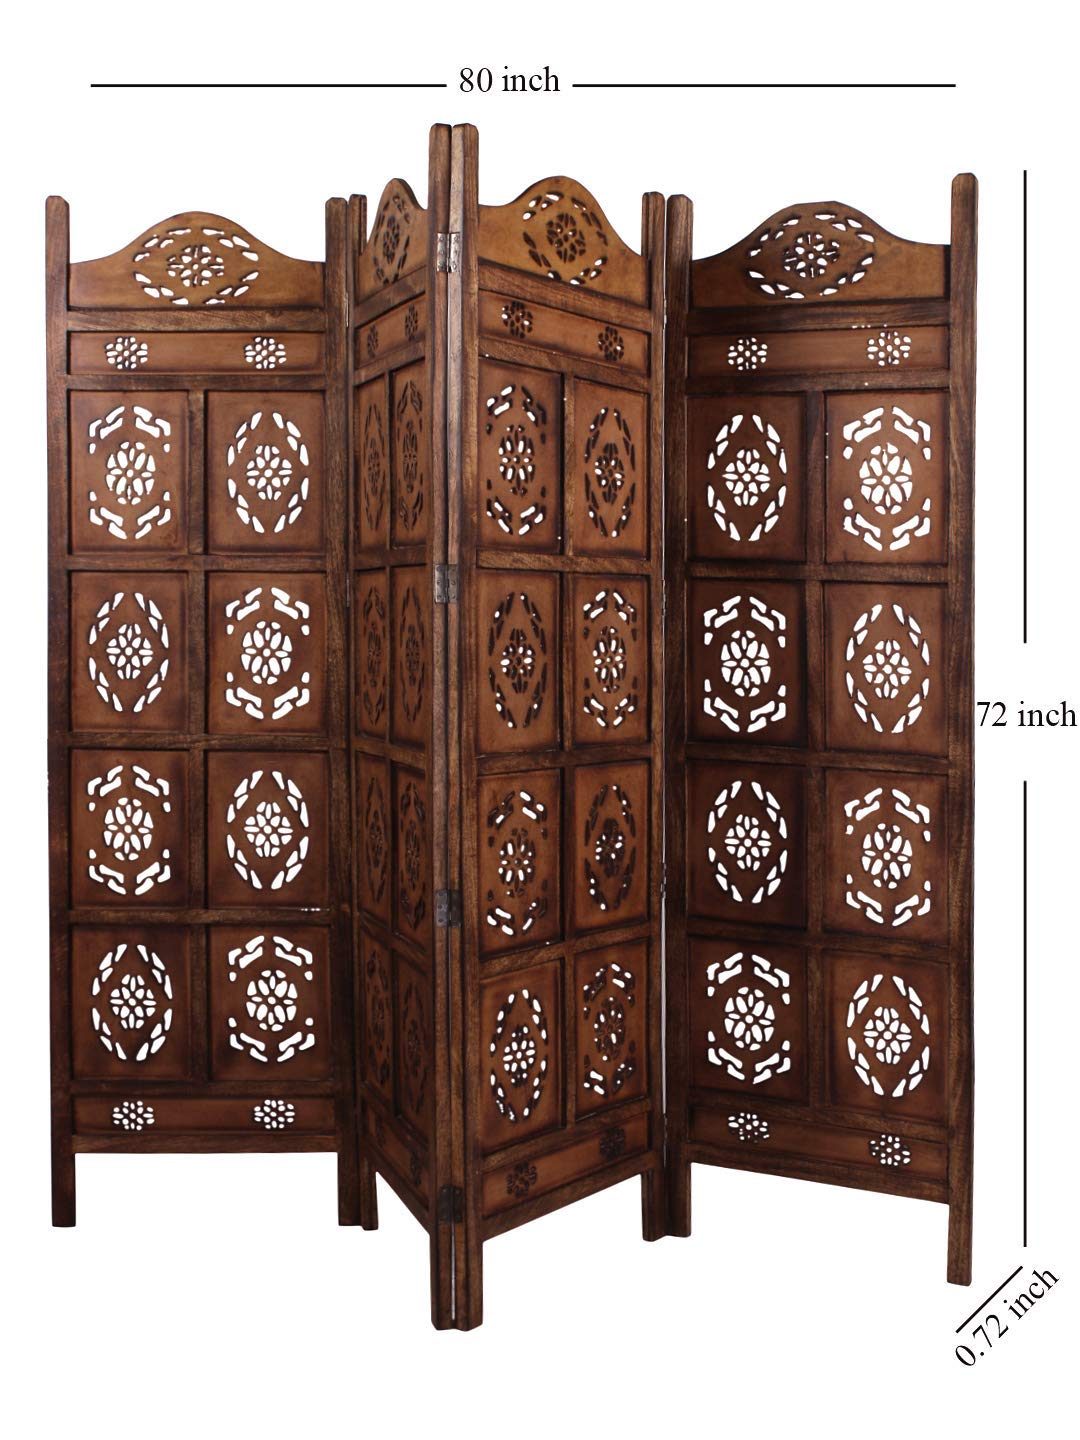 cusit Wooden Room Divider/Wooden Screen/Wooden Separator